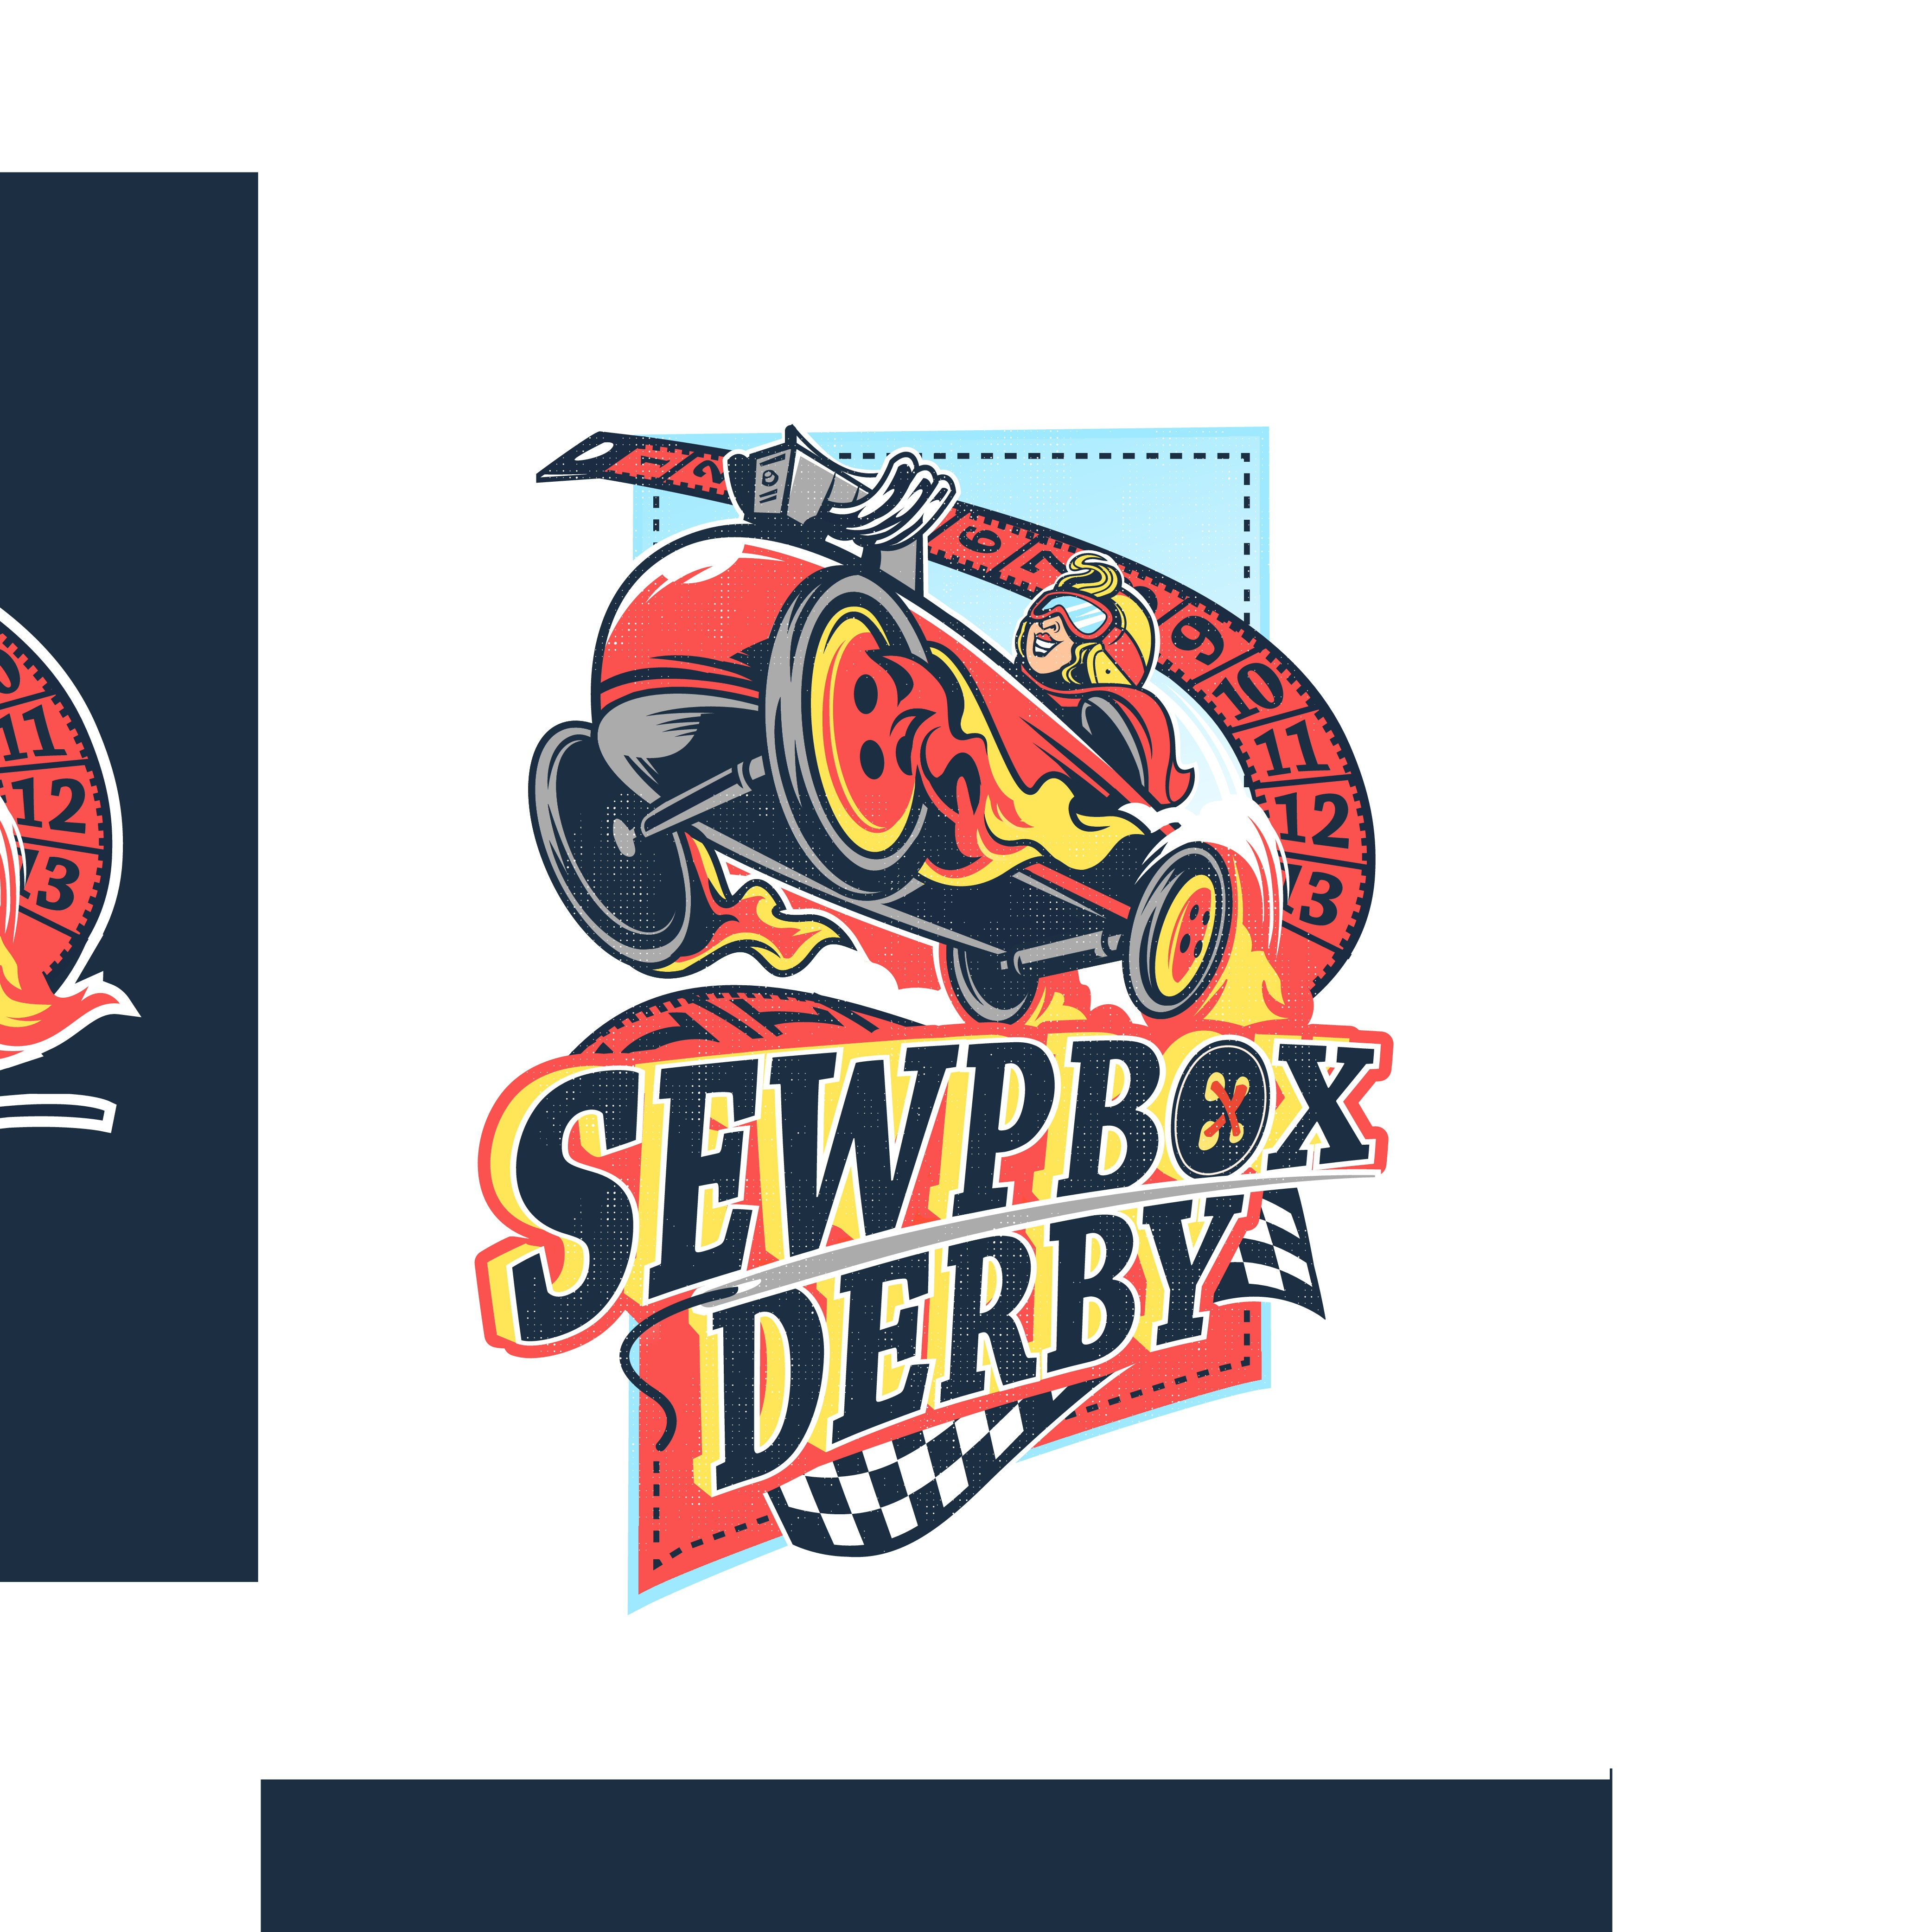 """Help us launch our new """"SewpBox Derby"""" event with a great logo!"""